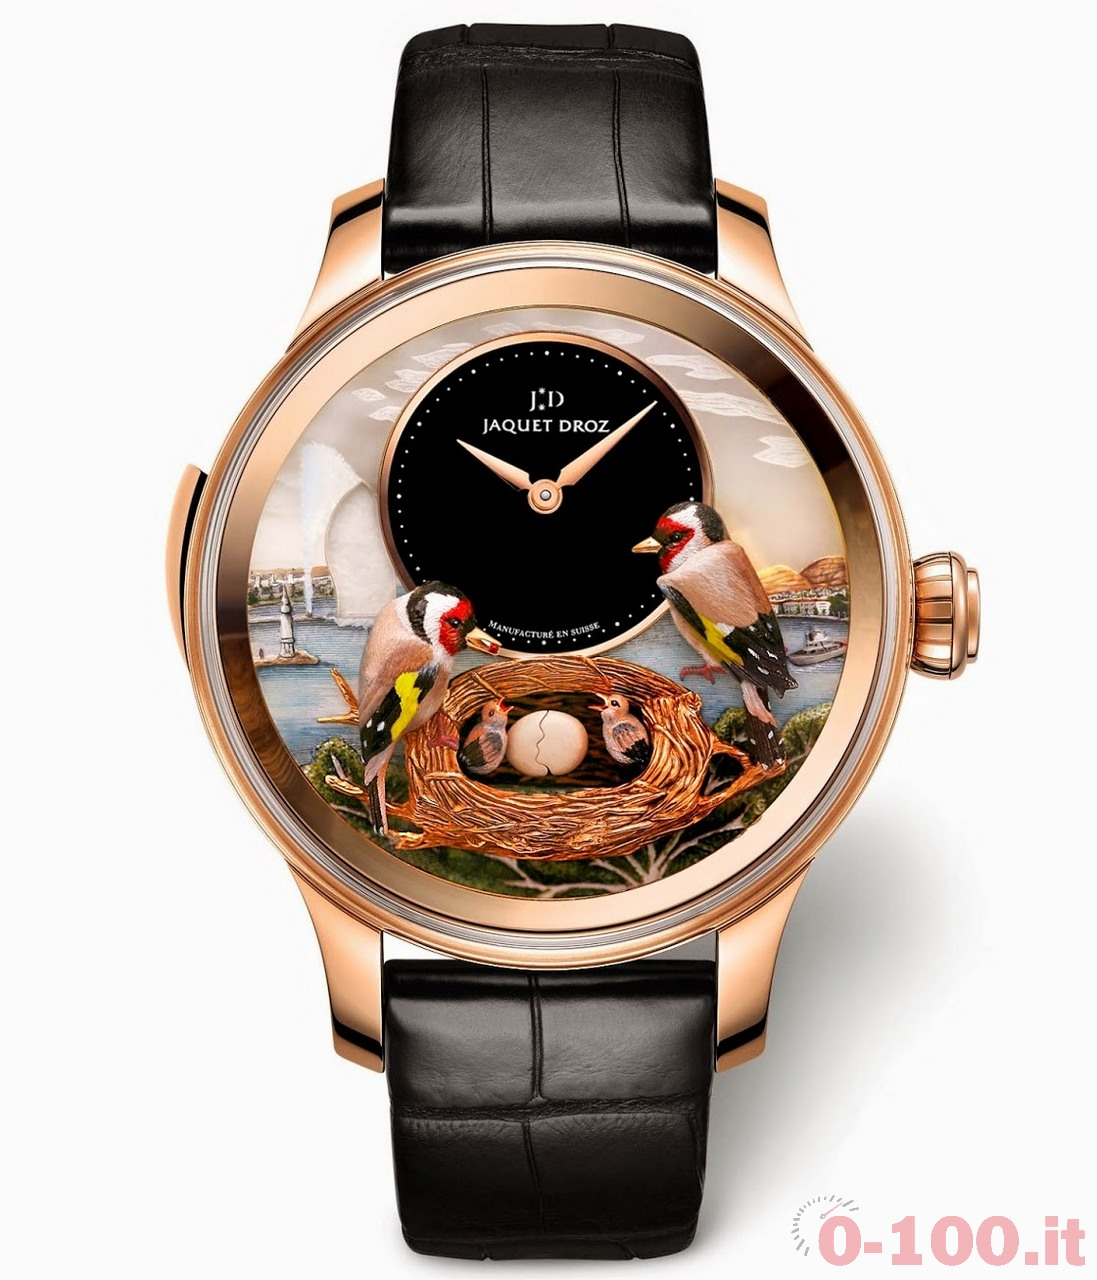 jaquet-droz-the-bird-repeater-geneva-ref-j031033204_0-100_4